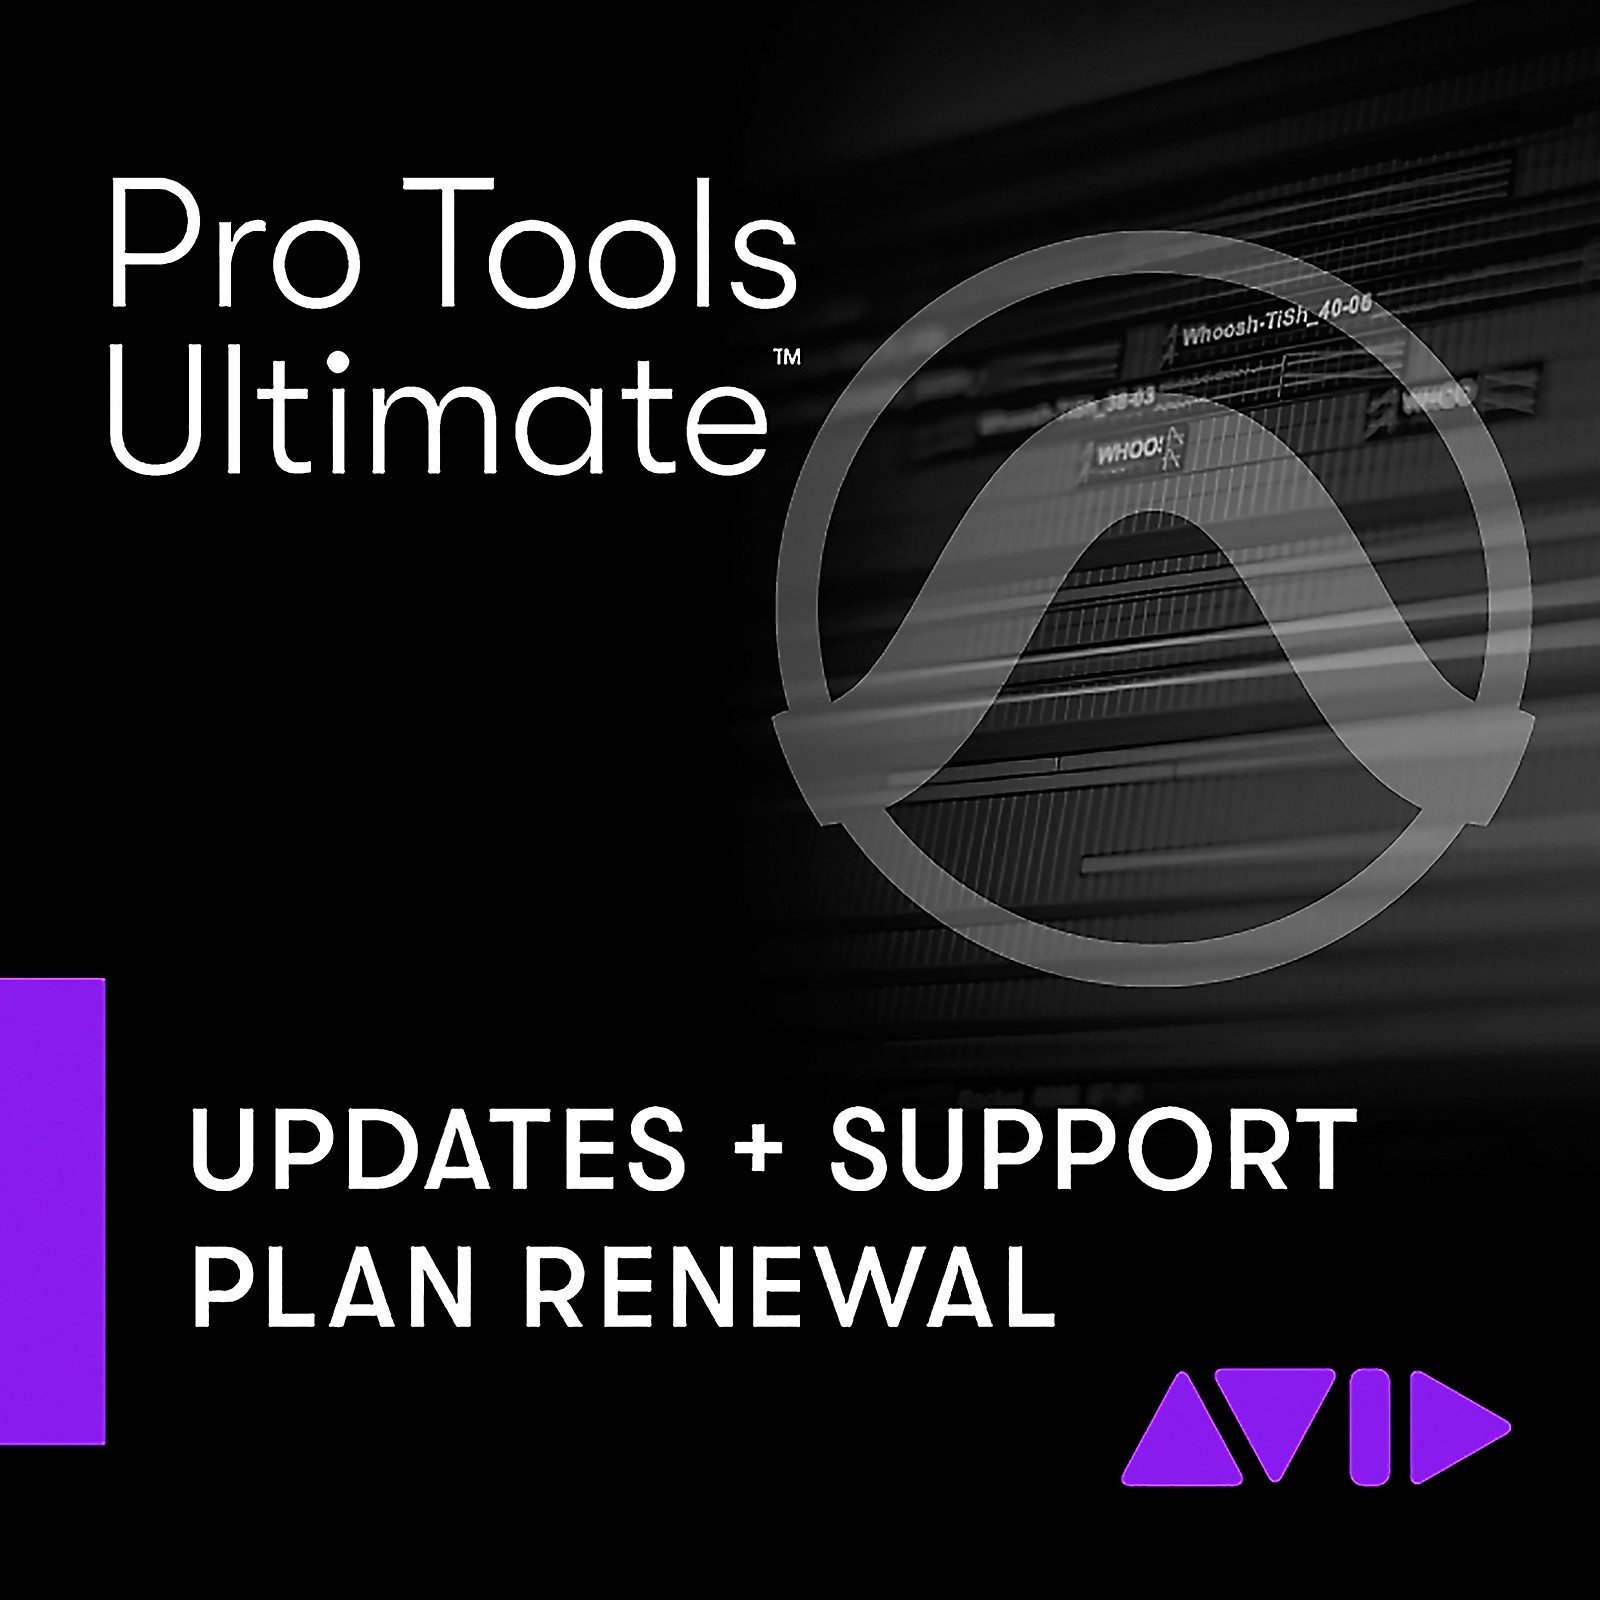 Avid Pro Tools Ultimate RENEWAL 1-Year of Updates + Support for Perpetual License (Download)